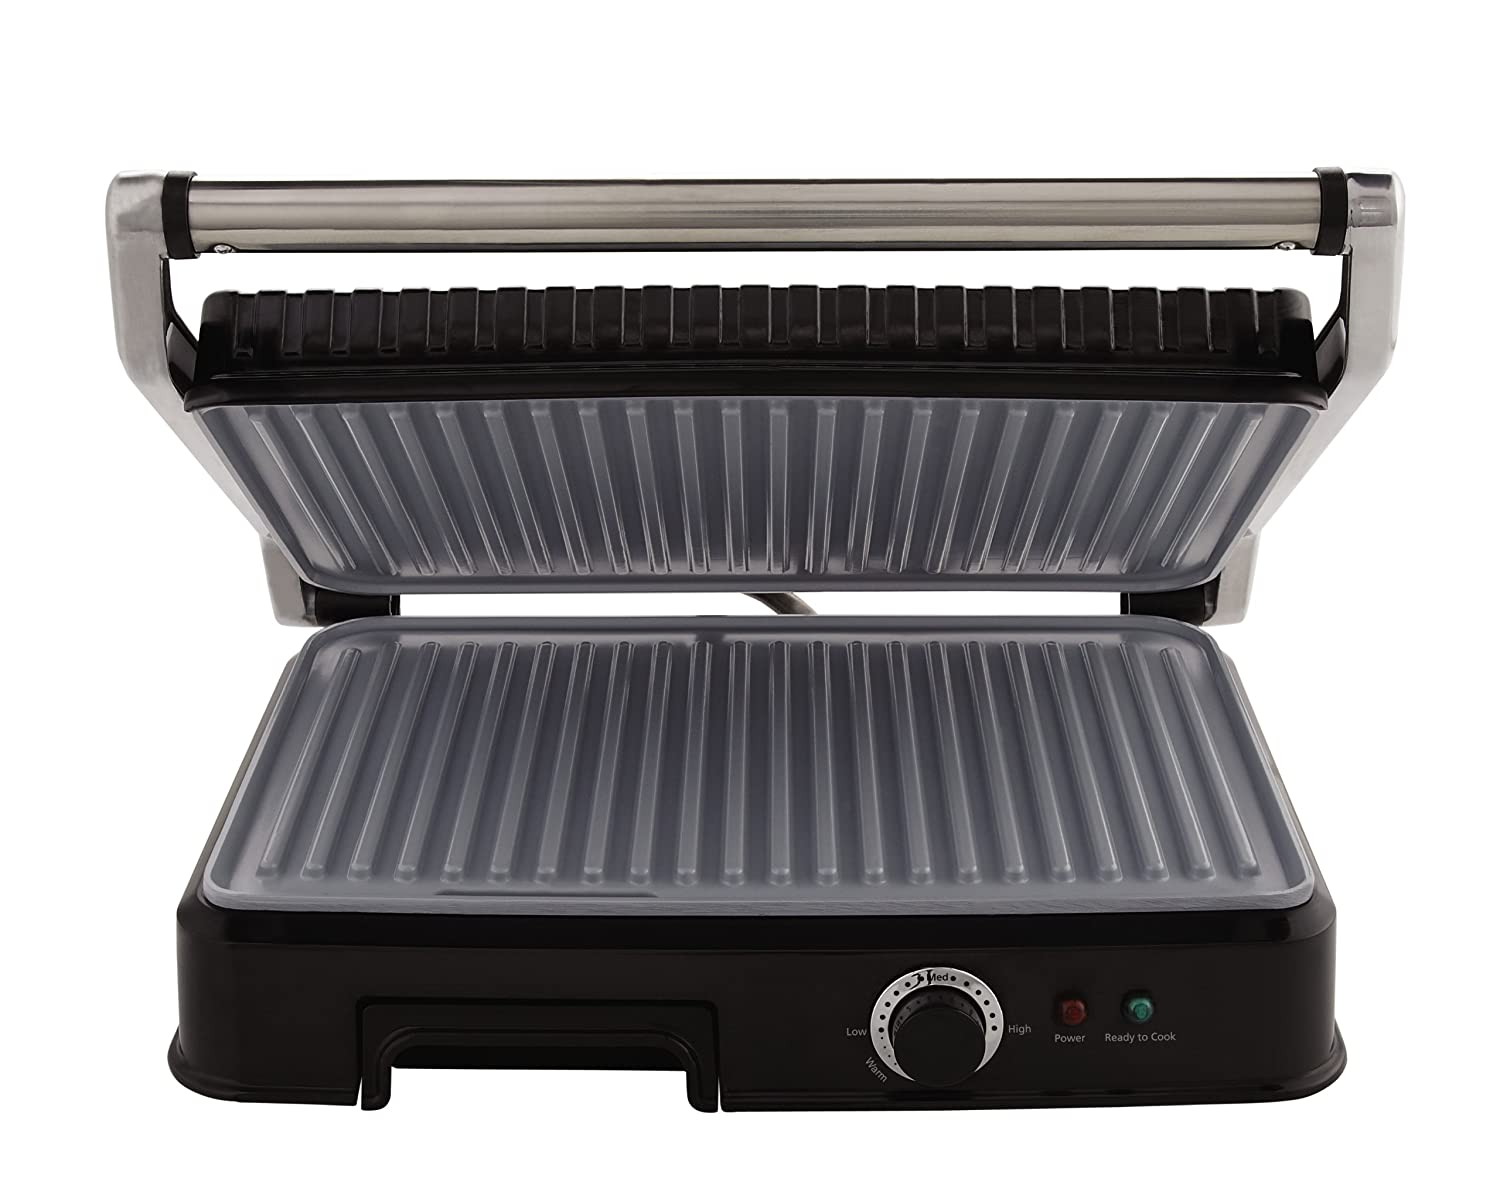 Oster Extra Large Titanium-Infused DuraCeramic Panini Maker and Indoor Grill, Black (CKSTPM6001-TECO) Jarden Consumer Solutions CKSTPM6001-ECO